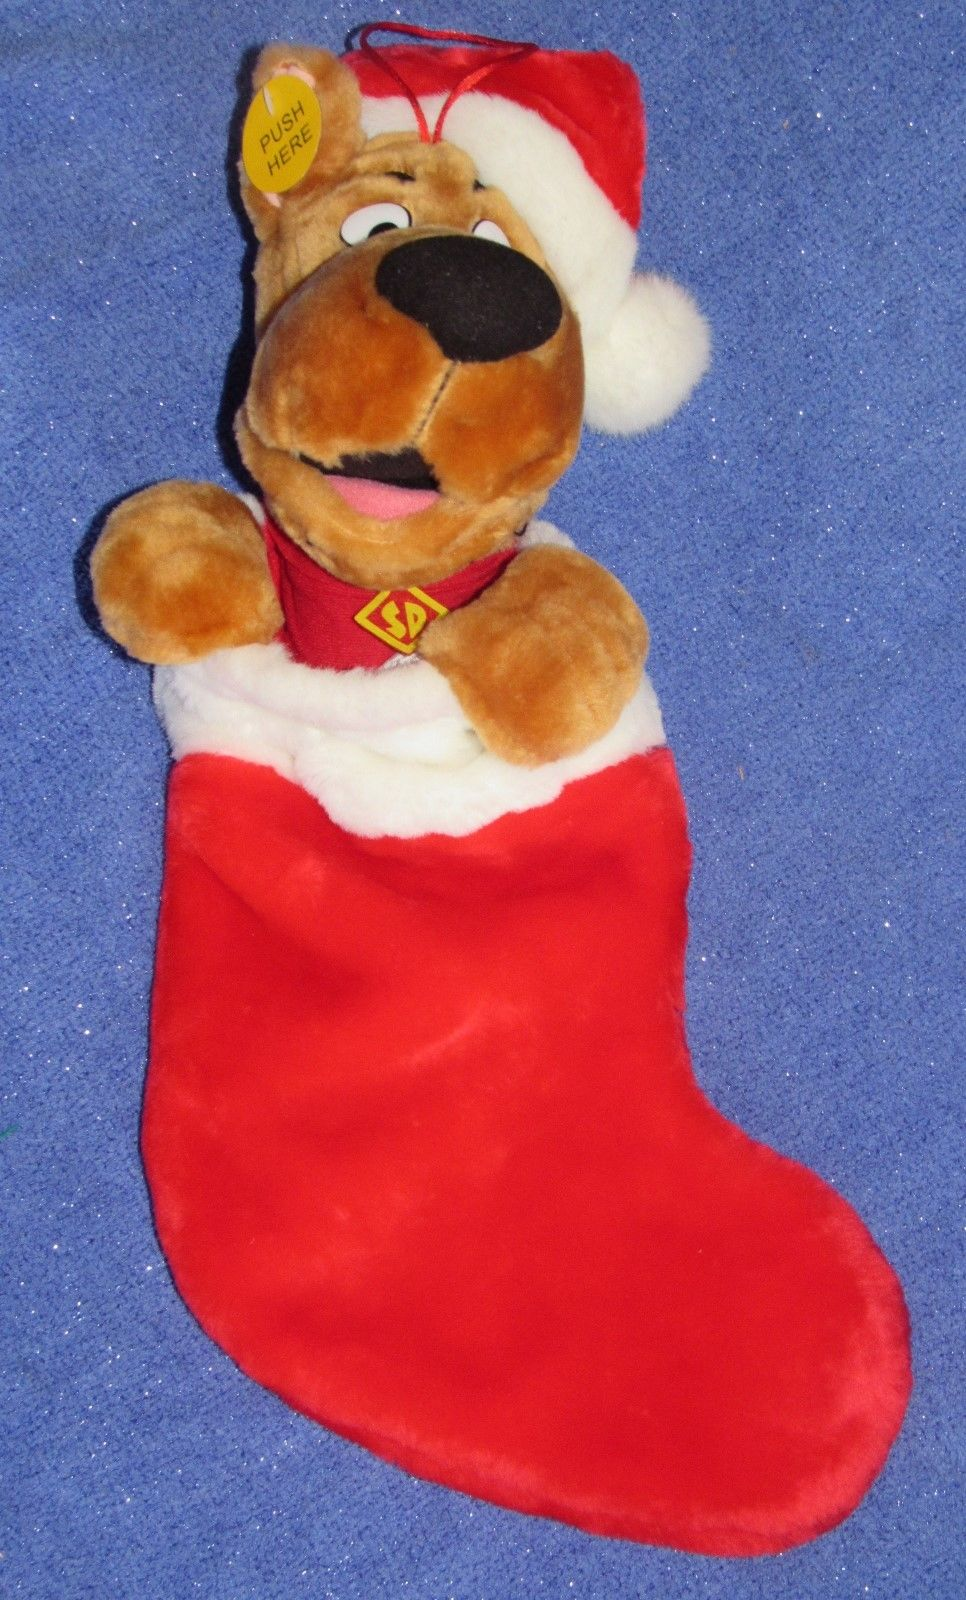 GREAT Animated Scooby Doo Christmas Stocking Mouth Moves Sings